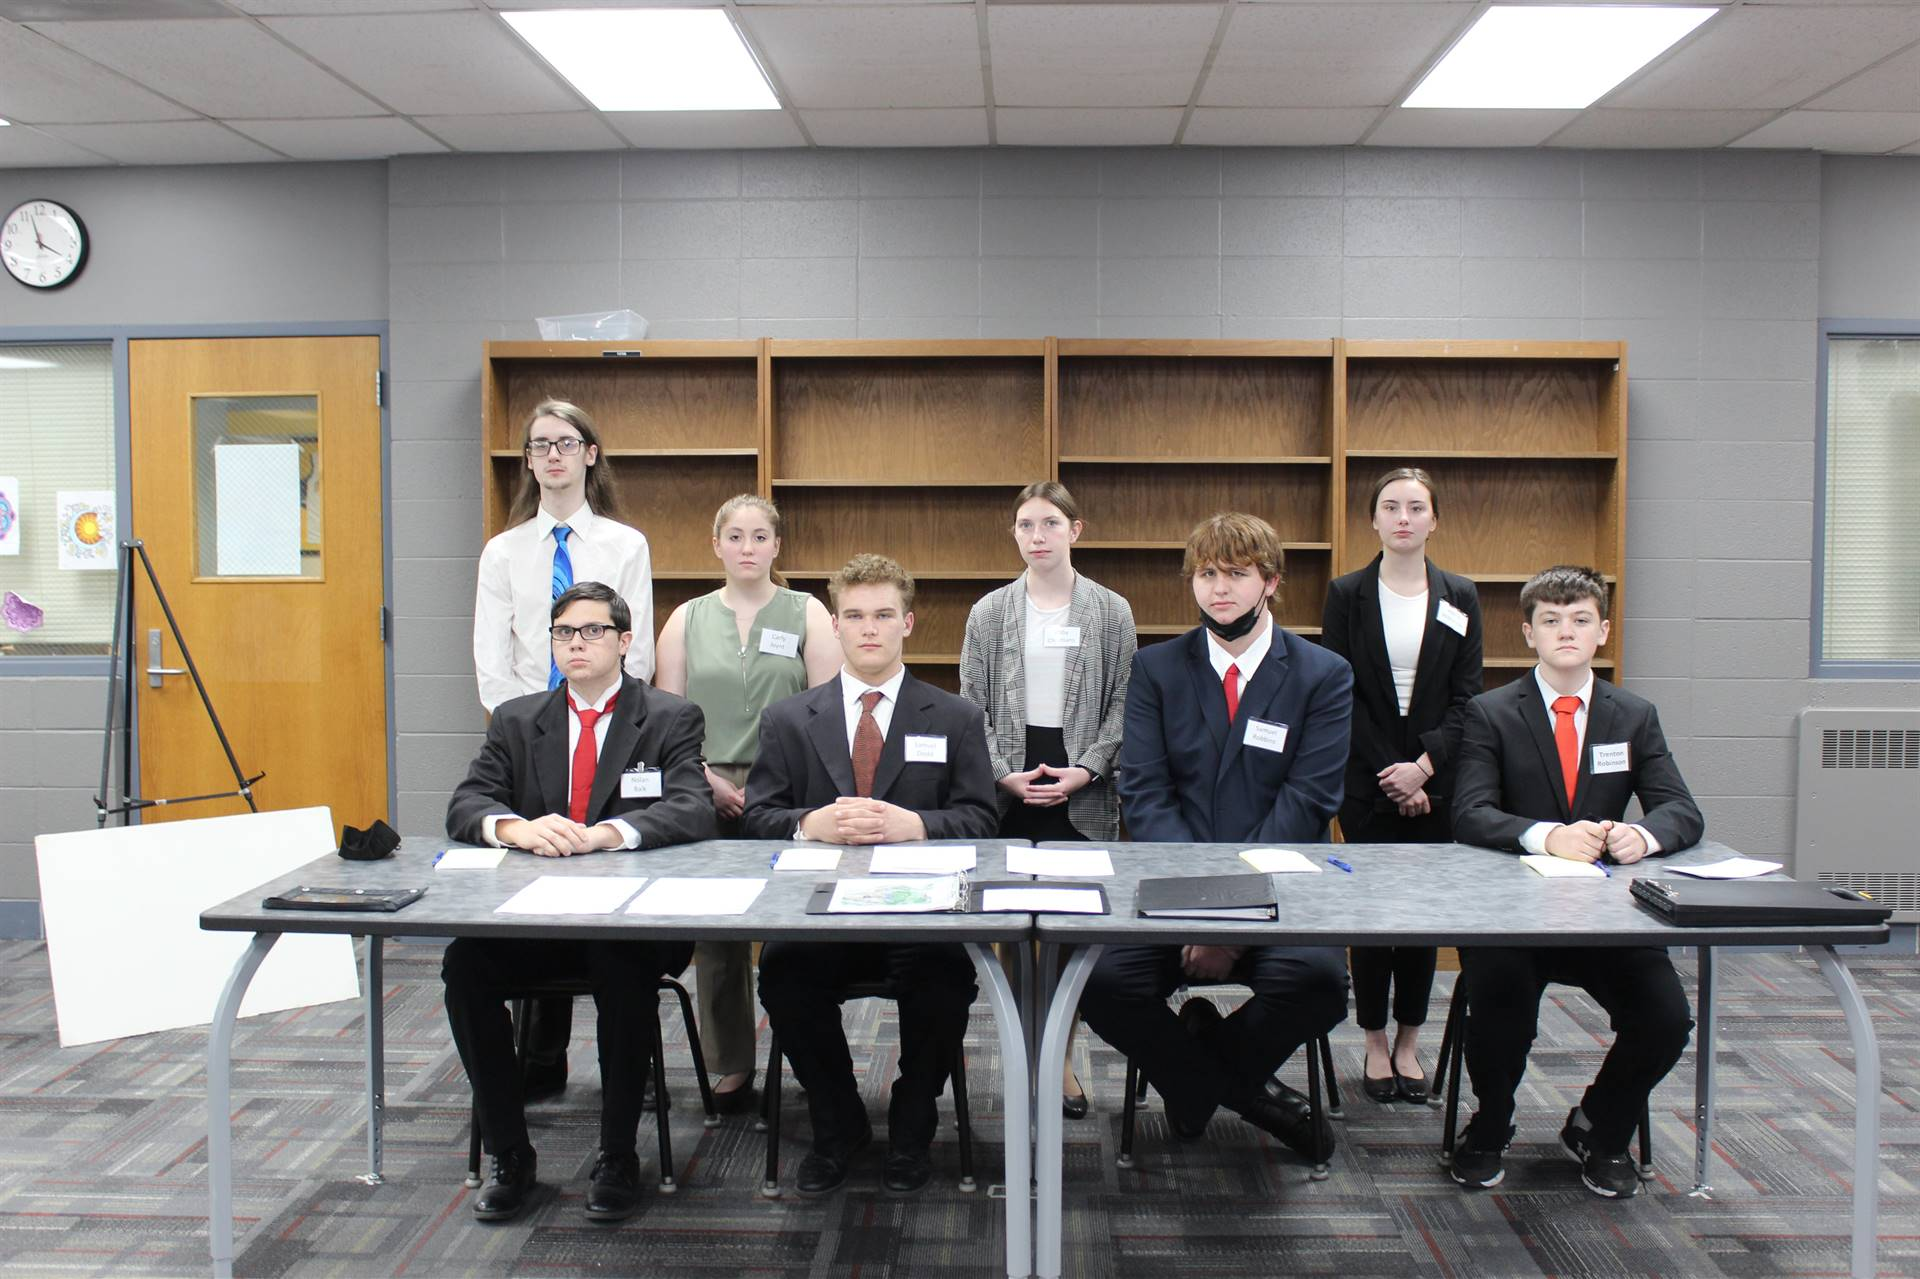 Mock Trial students sitting behind table